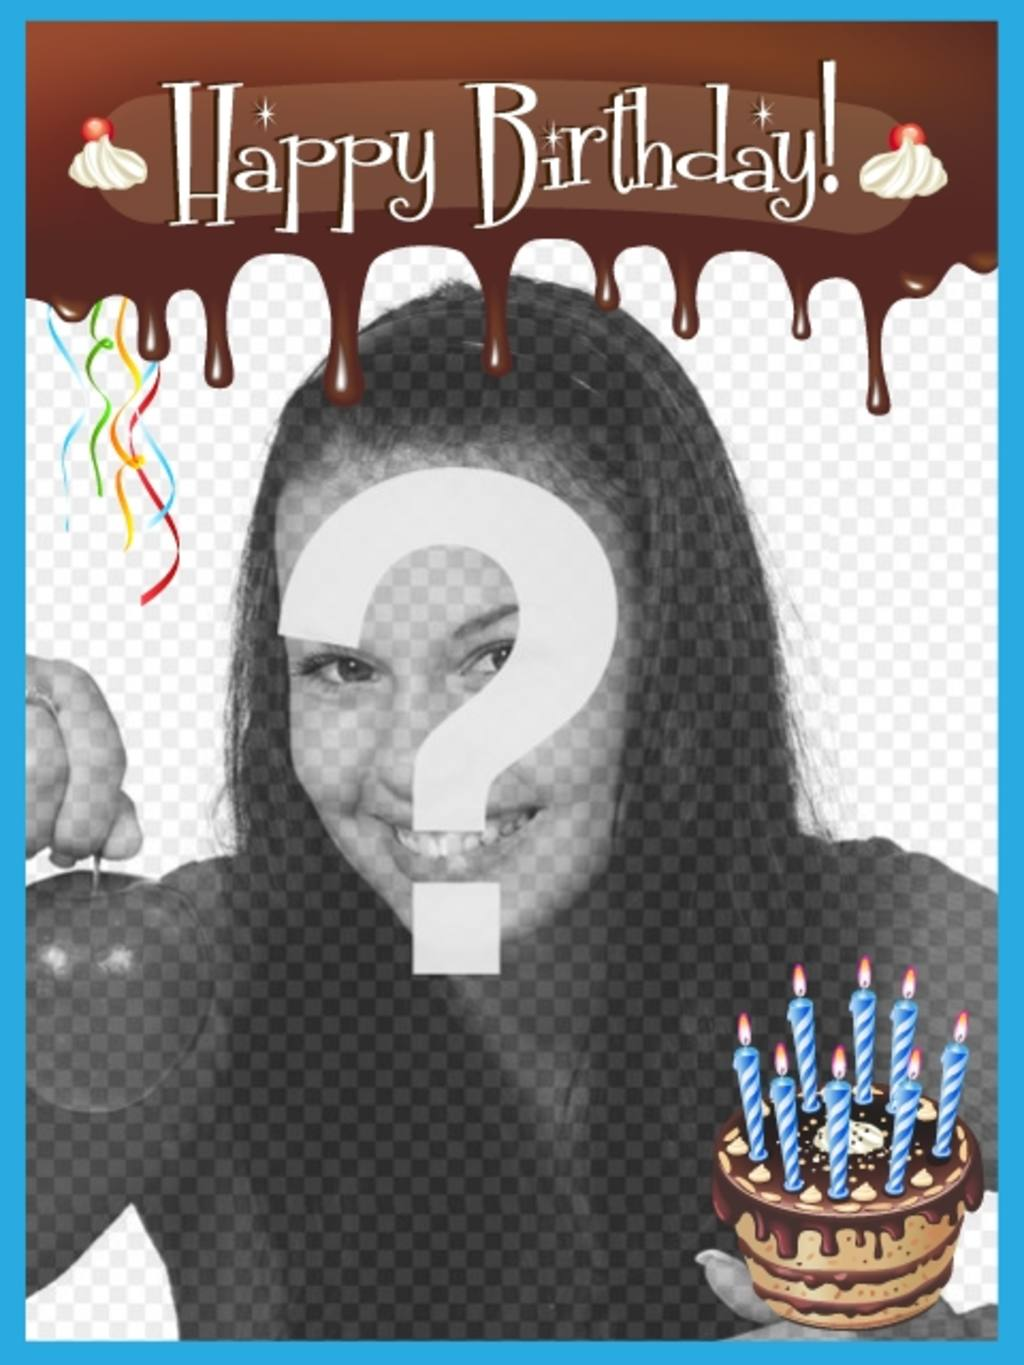 Happy birthday card with melted chocolate edge